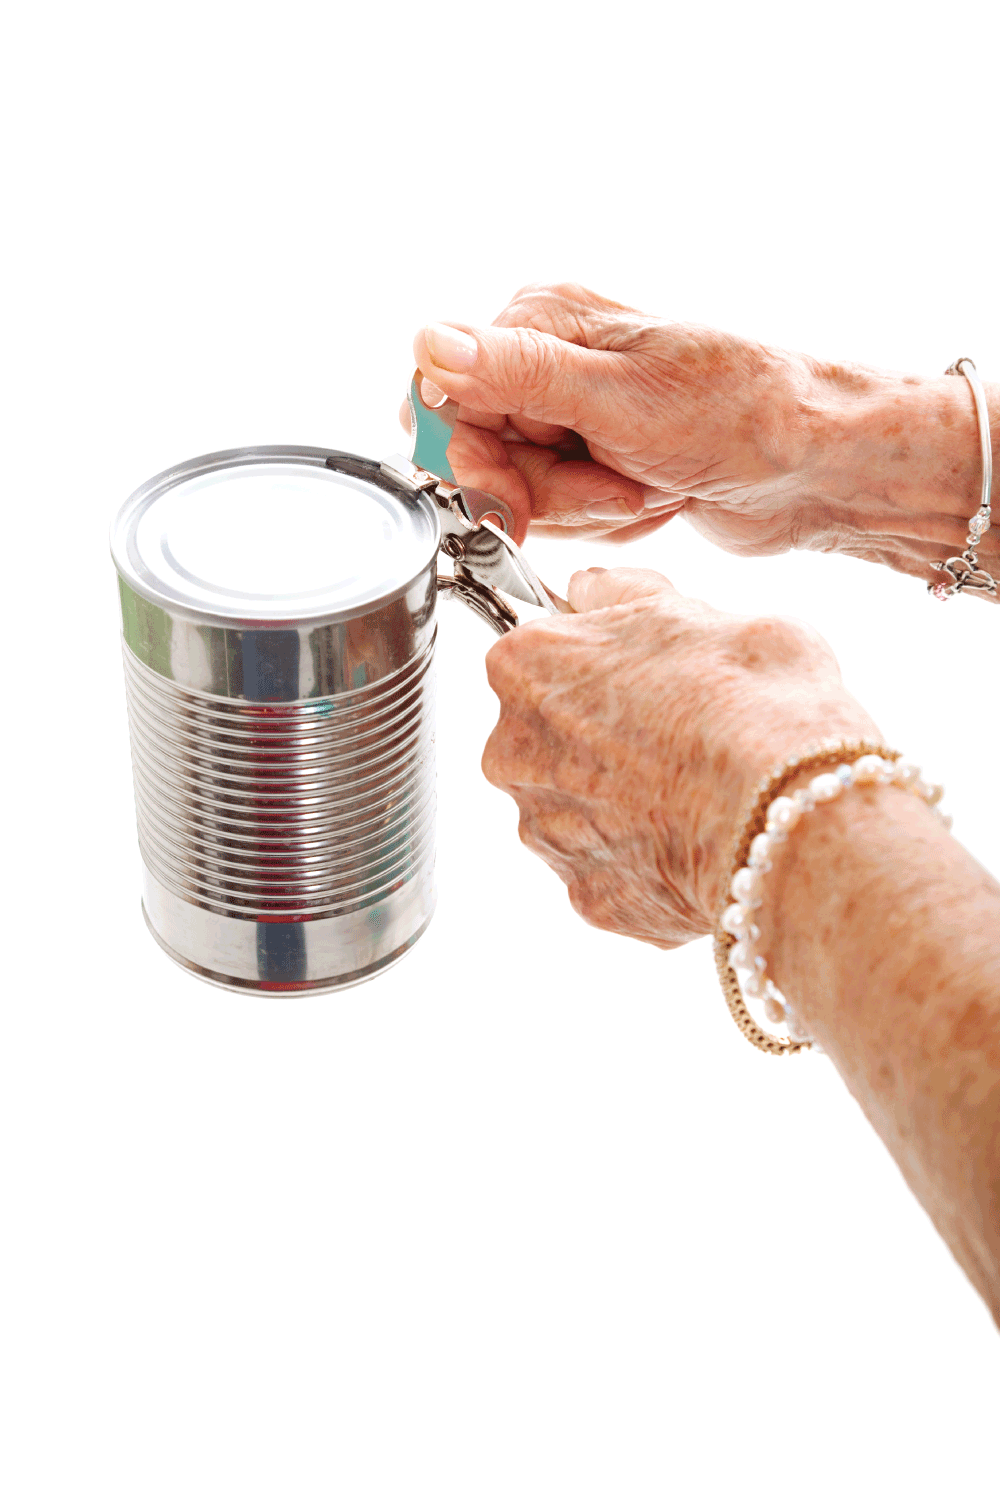 Elderly Hands Struggle with Can Opener